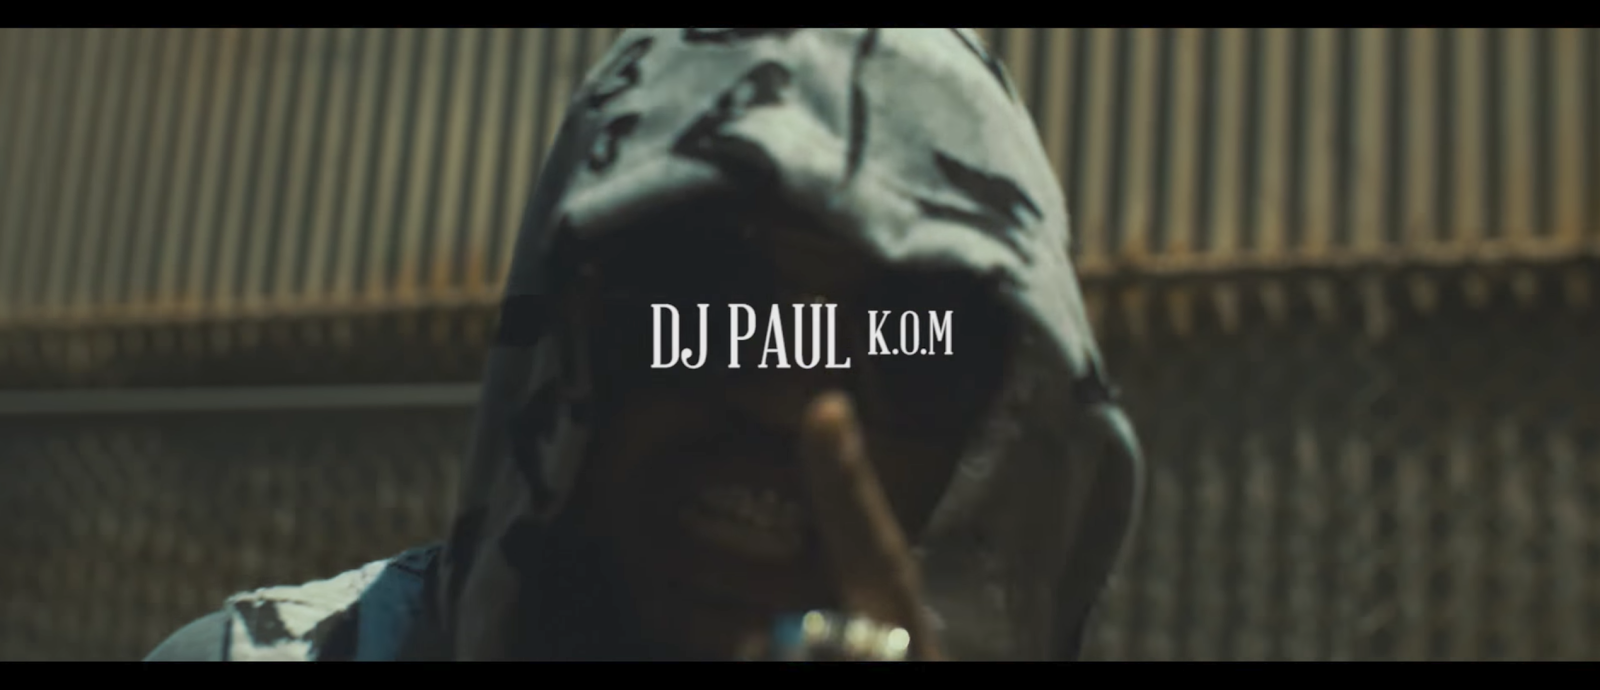 DJ PAUL KOM - HEADSHOT HAIR DO (VIDEO)